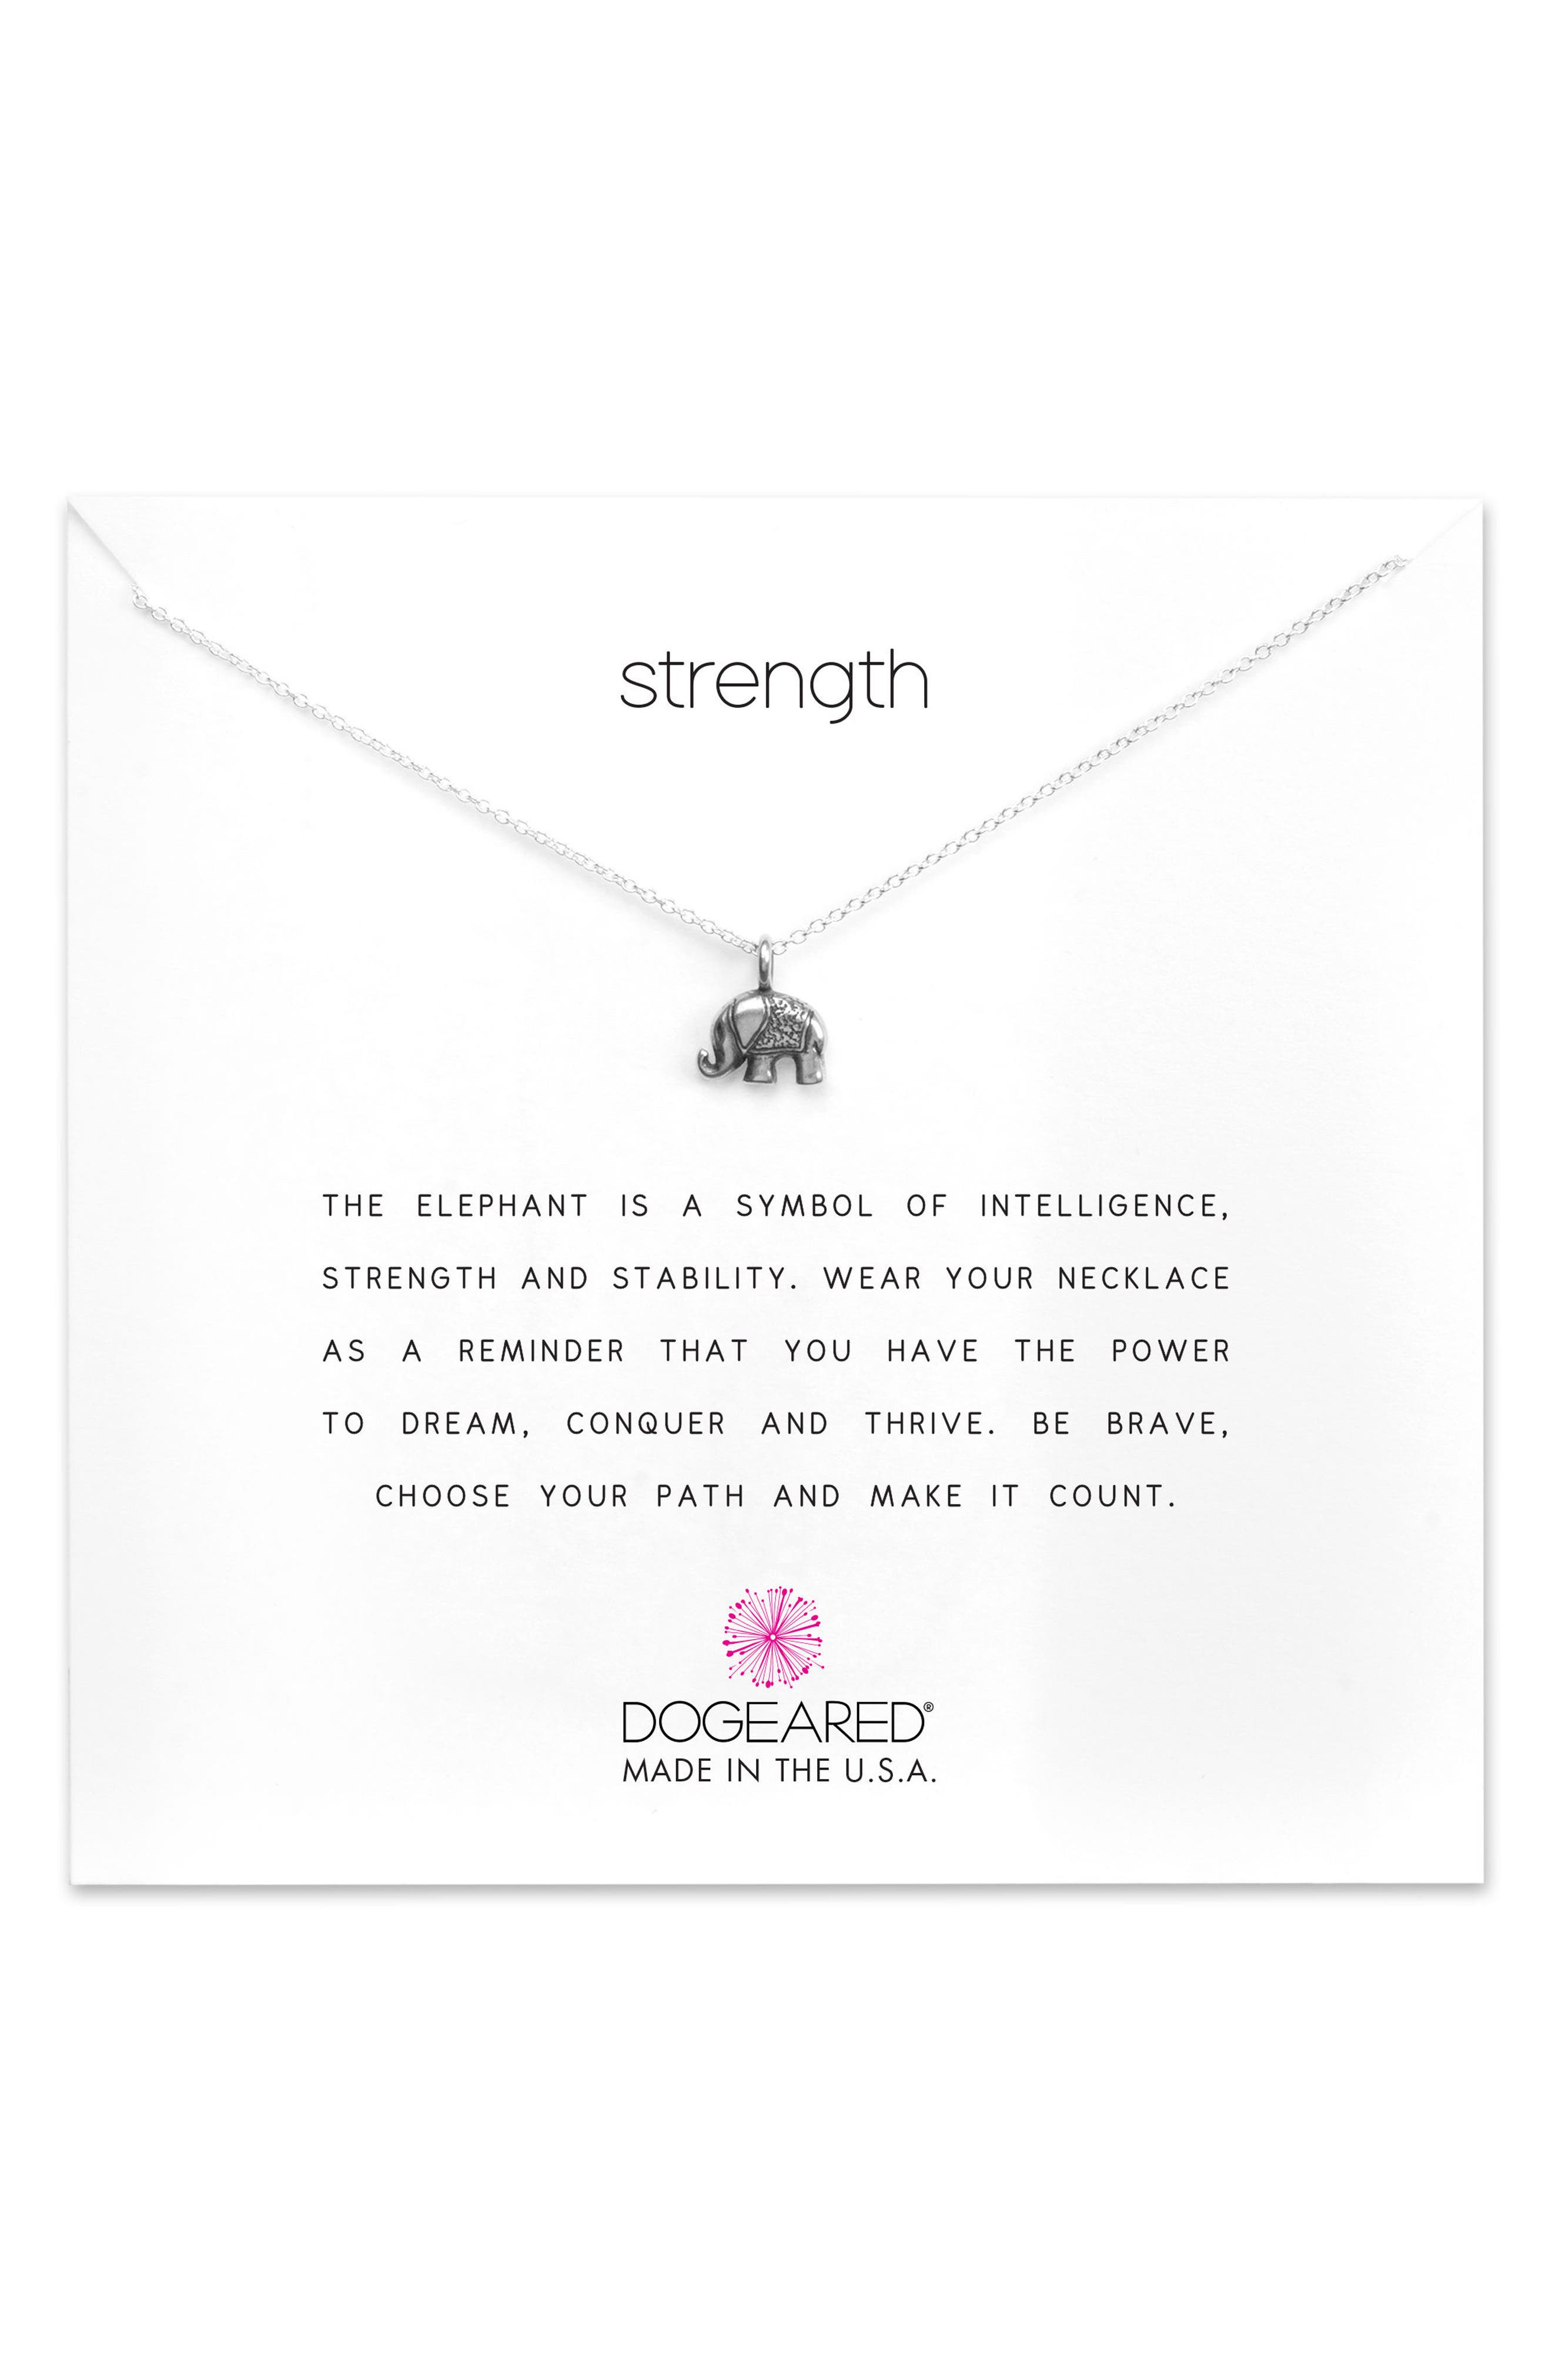 Main Image - Dogeared Reminder - Strength Pendant Necklace